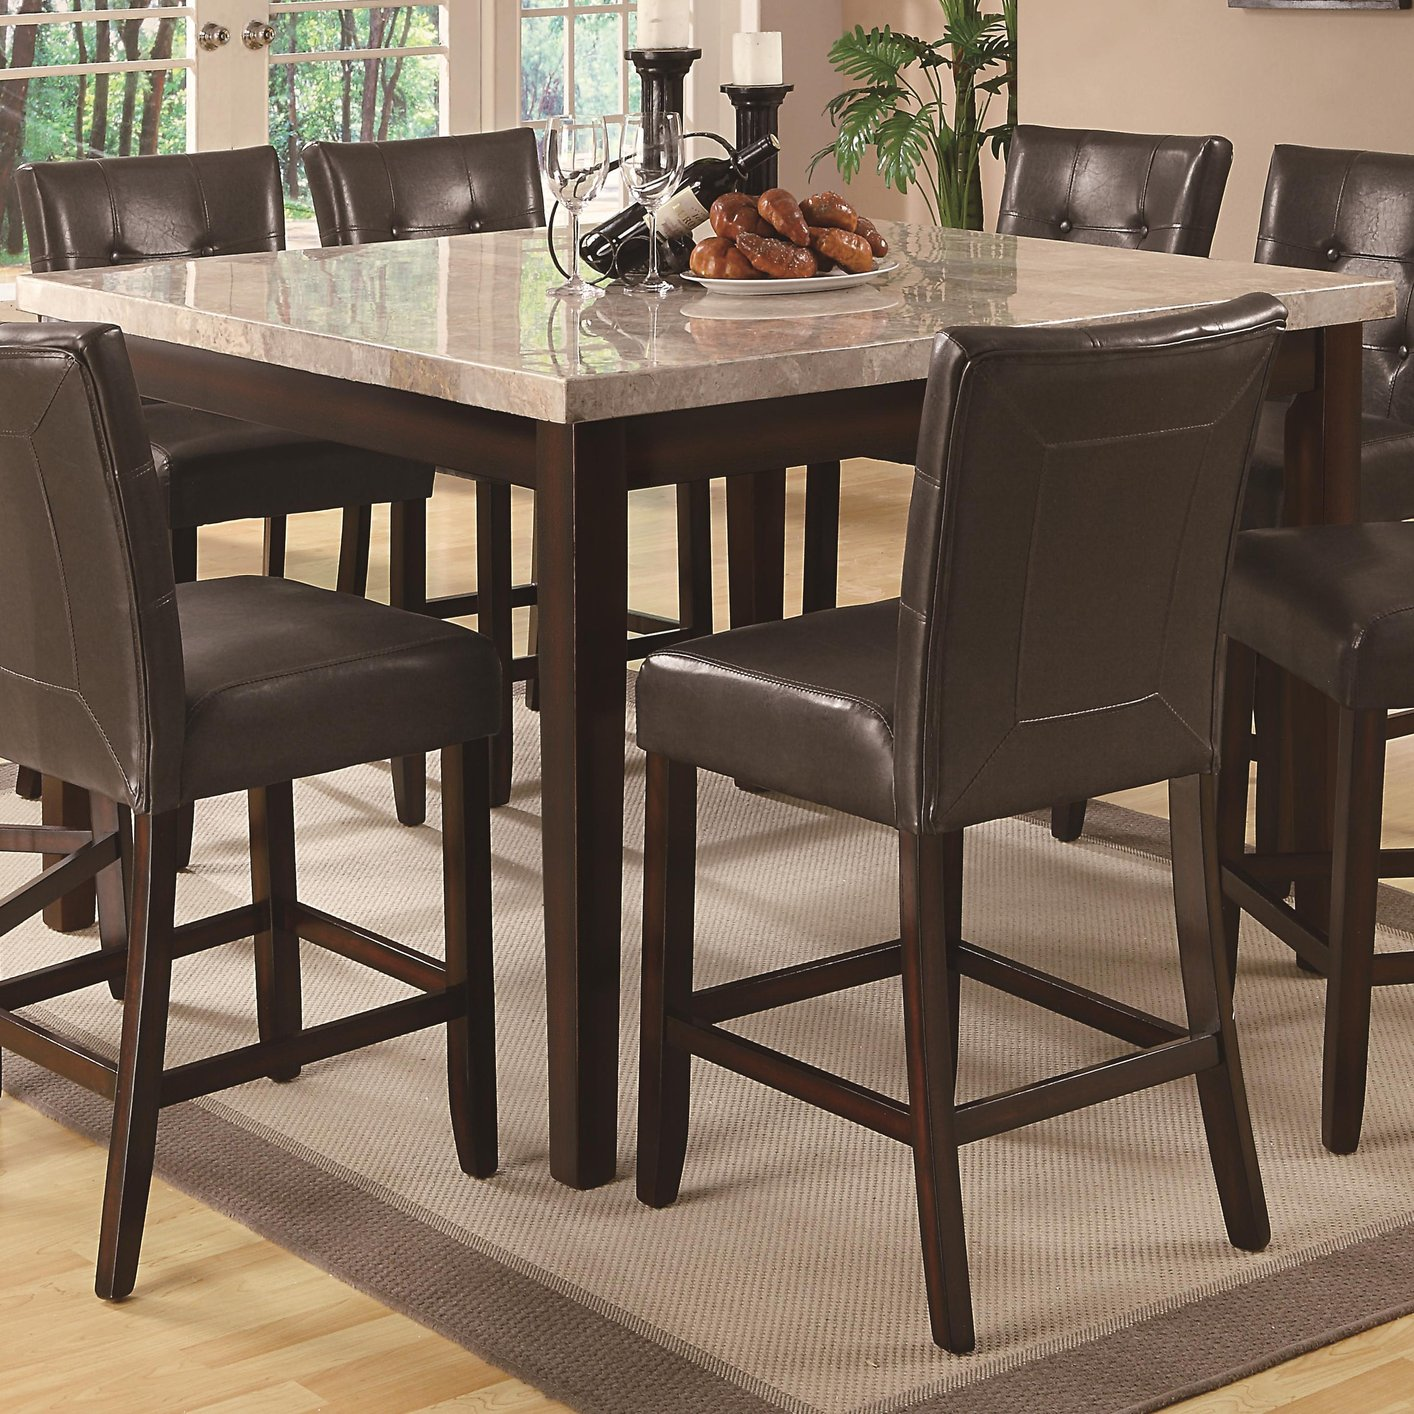 Coaster 103778 Brown Marble Dining Table